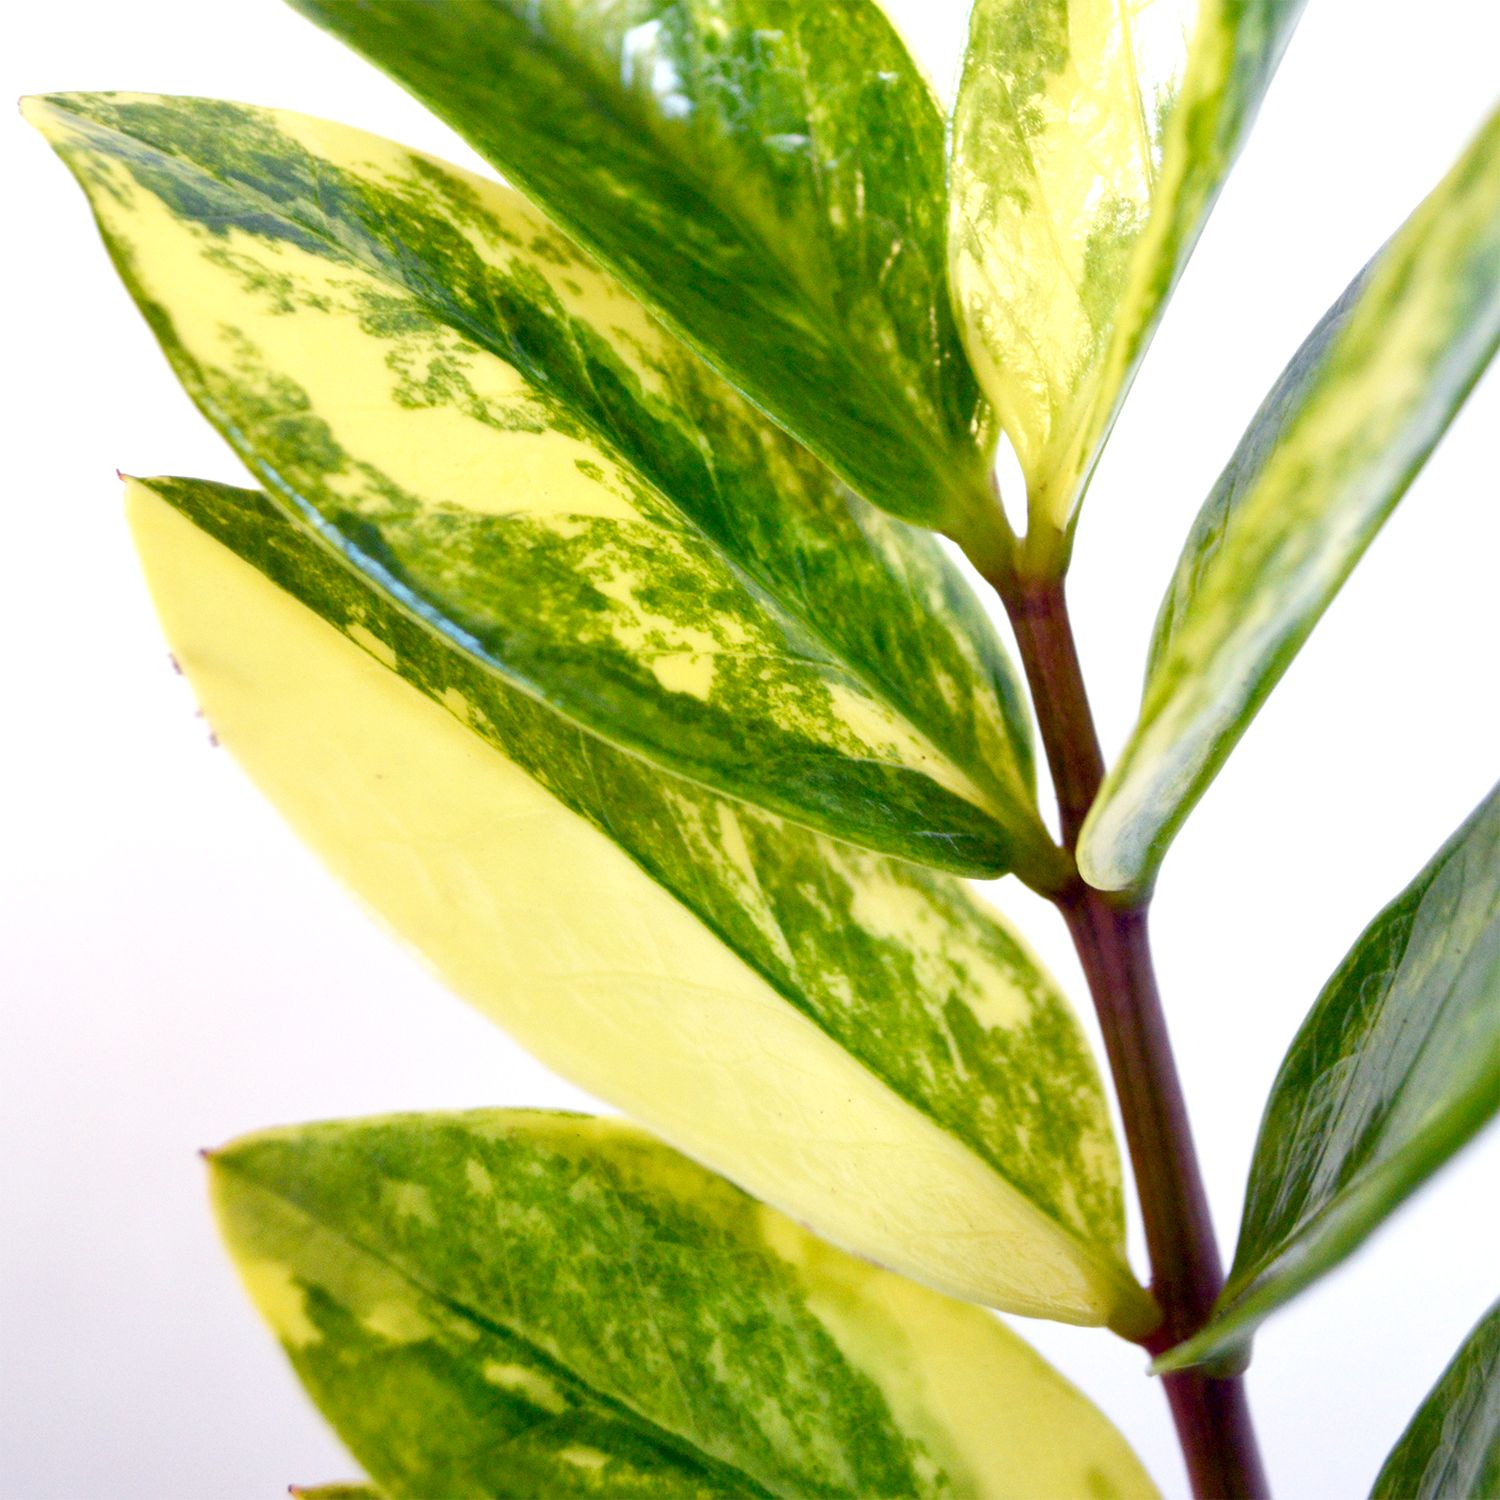 Variegated Zamioculcas ZZ Plant | Indoor Plants | Zz plant ... on order birds of paradise plant, zamiifolia house plant, spider house plant, fig house plant, houseplants plant, croton house plant, banana house plant, cast iron plant, rubber house plant, hydrangea house plant, peperomia house plant, fern house plant, zi zi plant, arrowhead house plant, umbrella house plant, avocado house plant, eternity plant, house plant identification succulent plant,